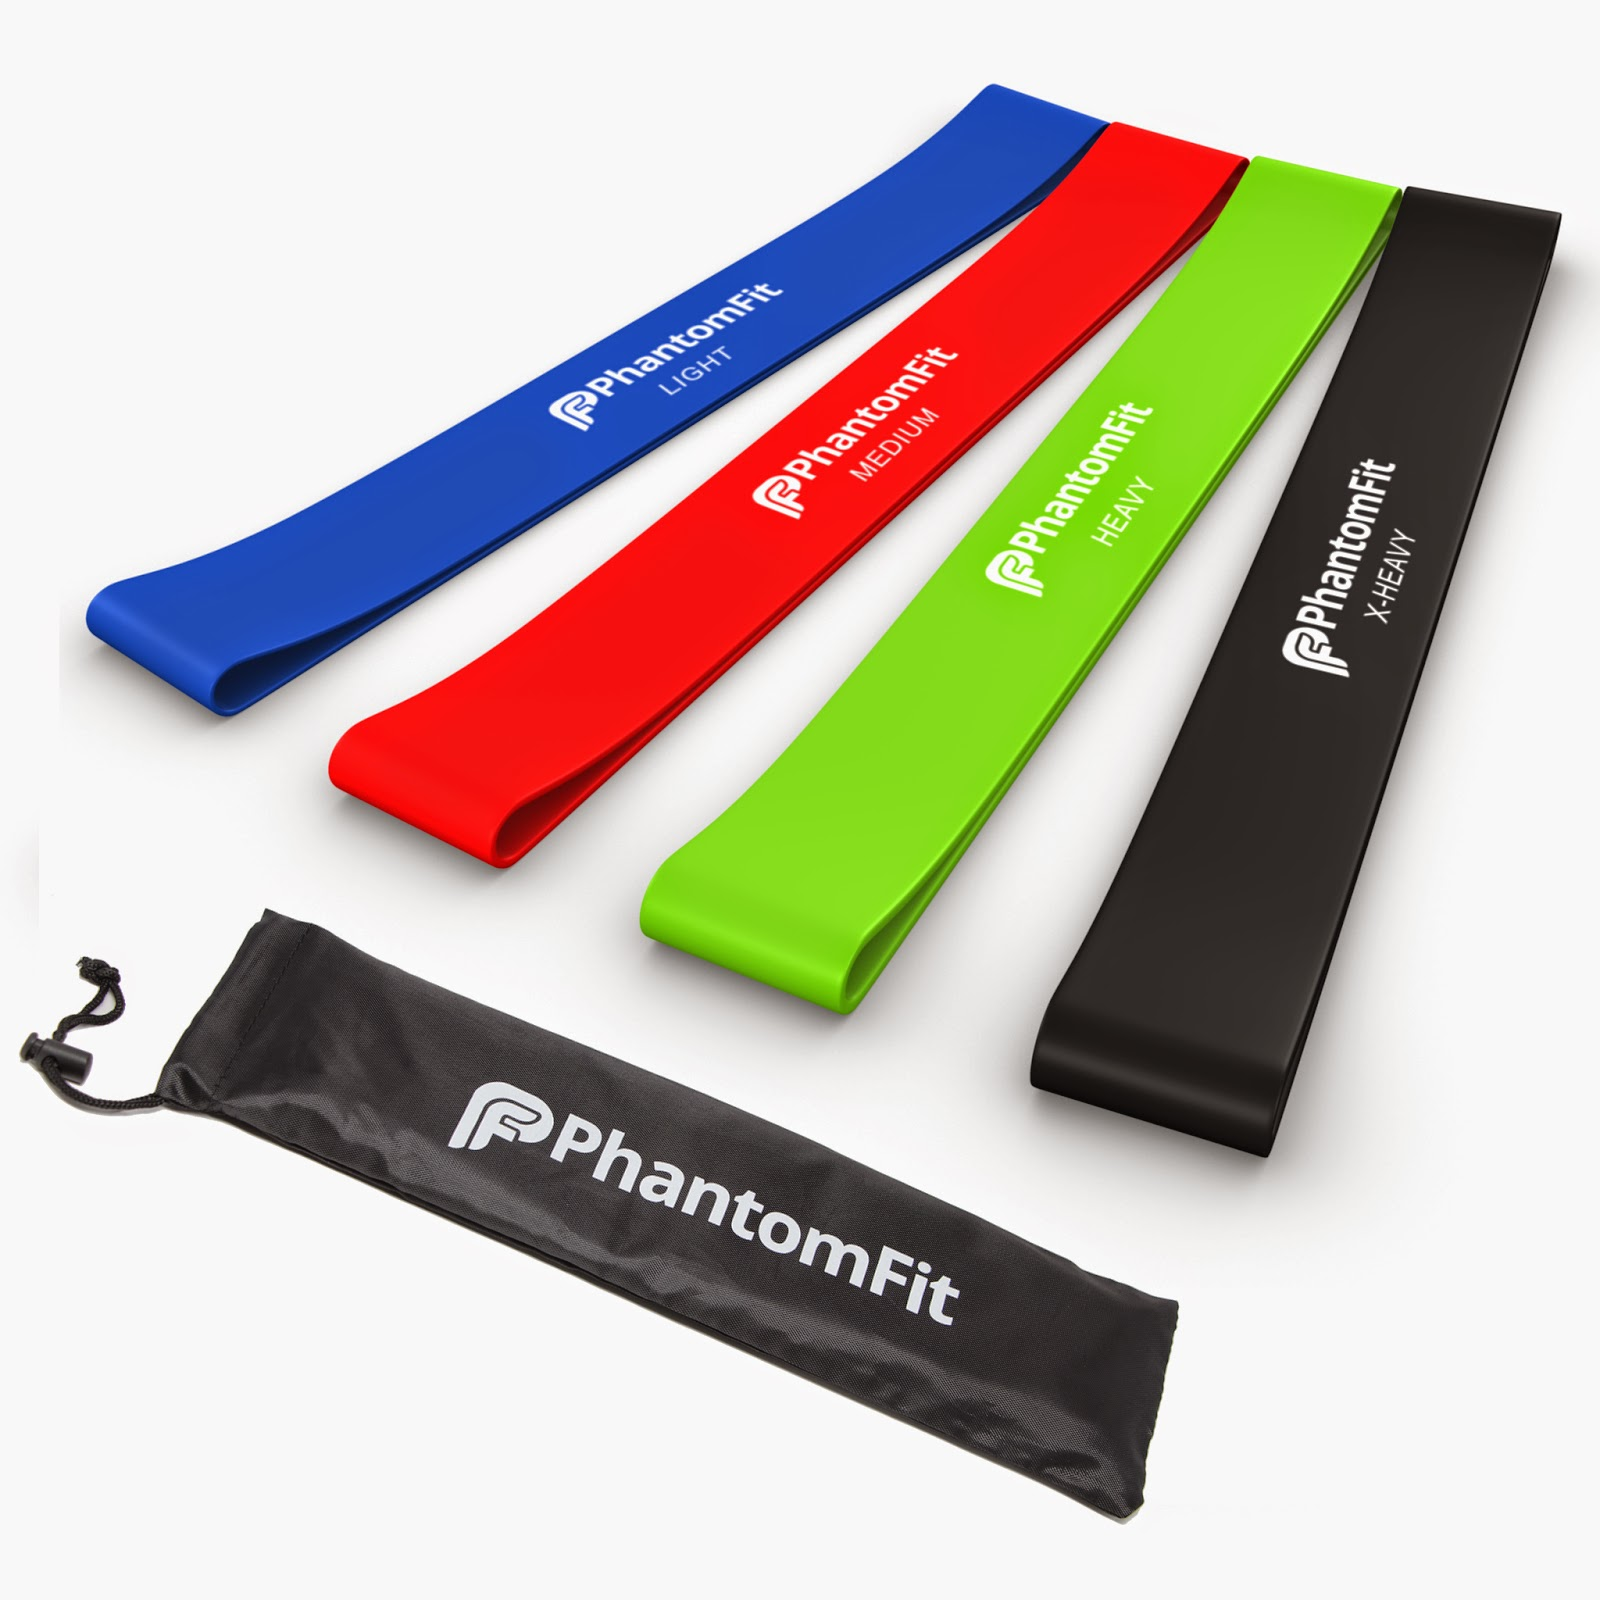 PhantomFit Resistance Loop Bands